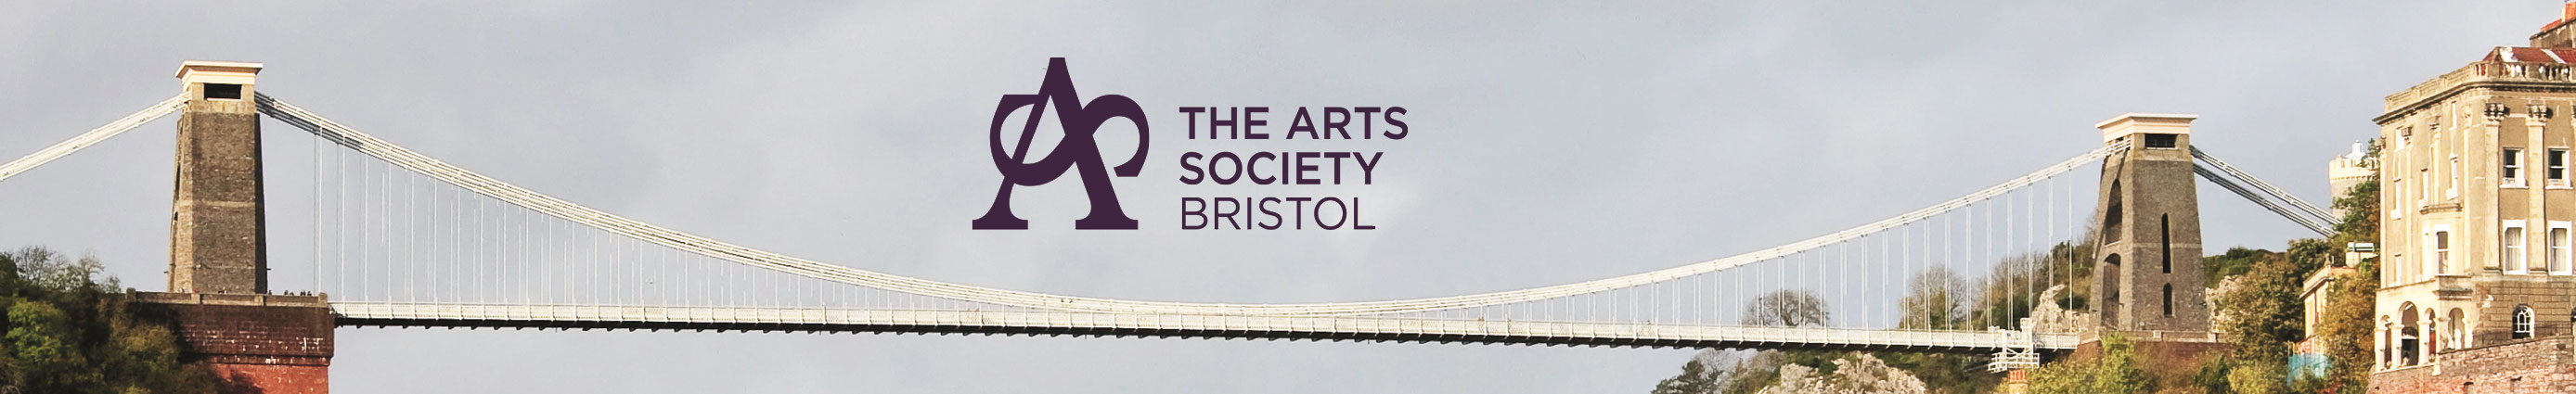 The Arts Society Bristol